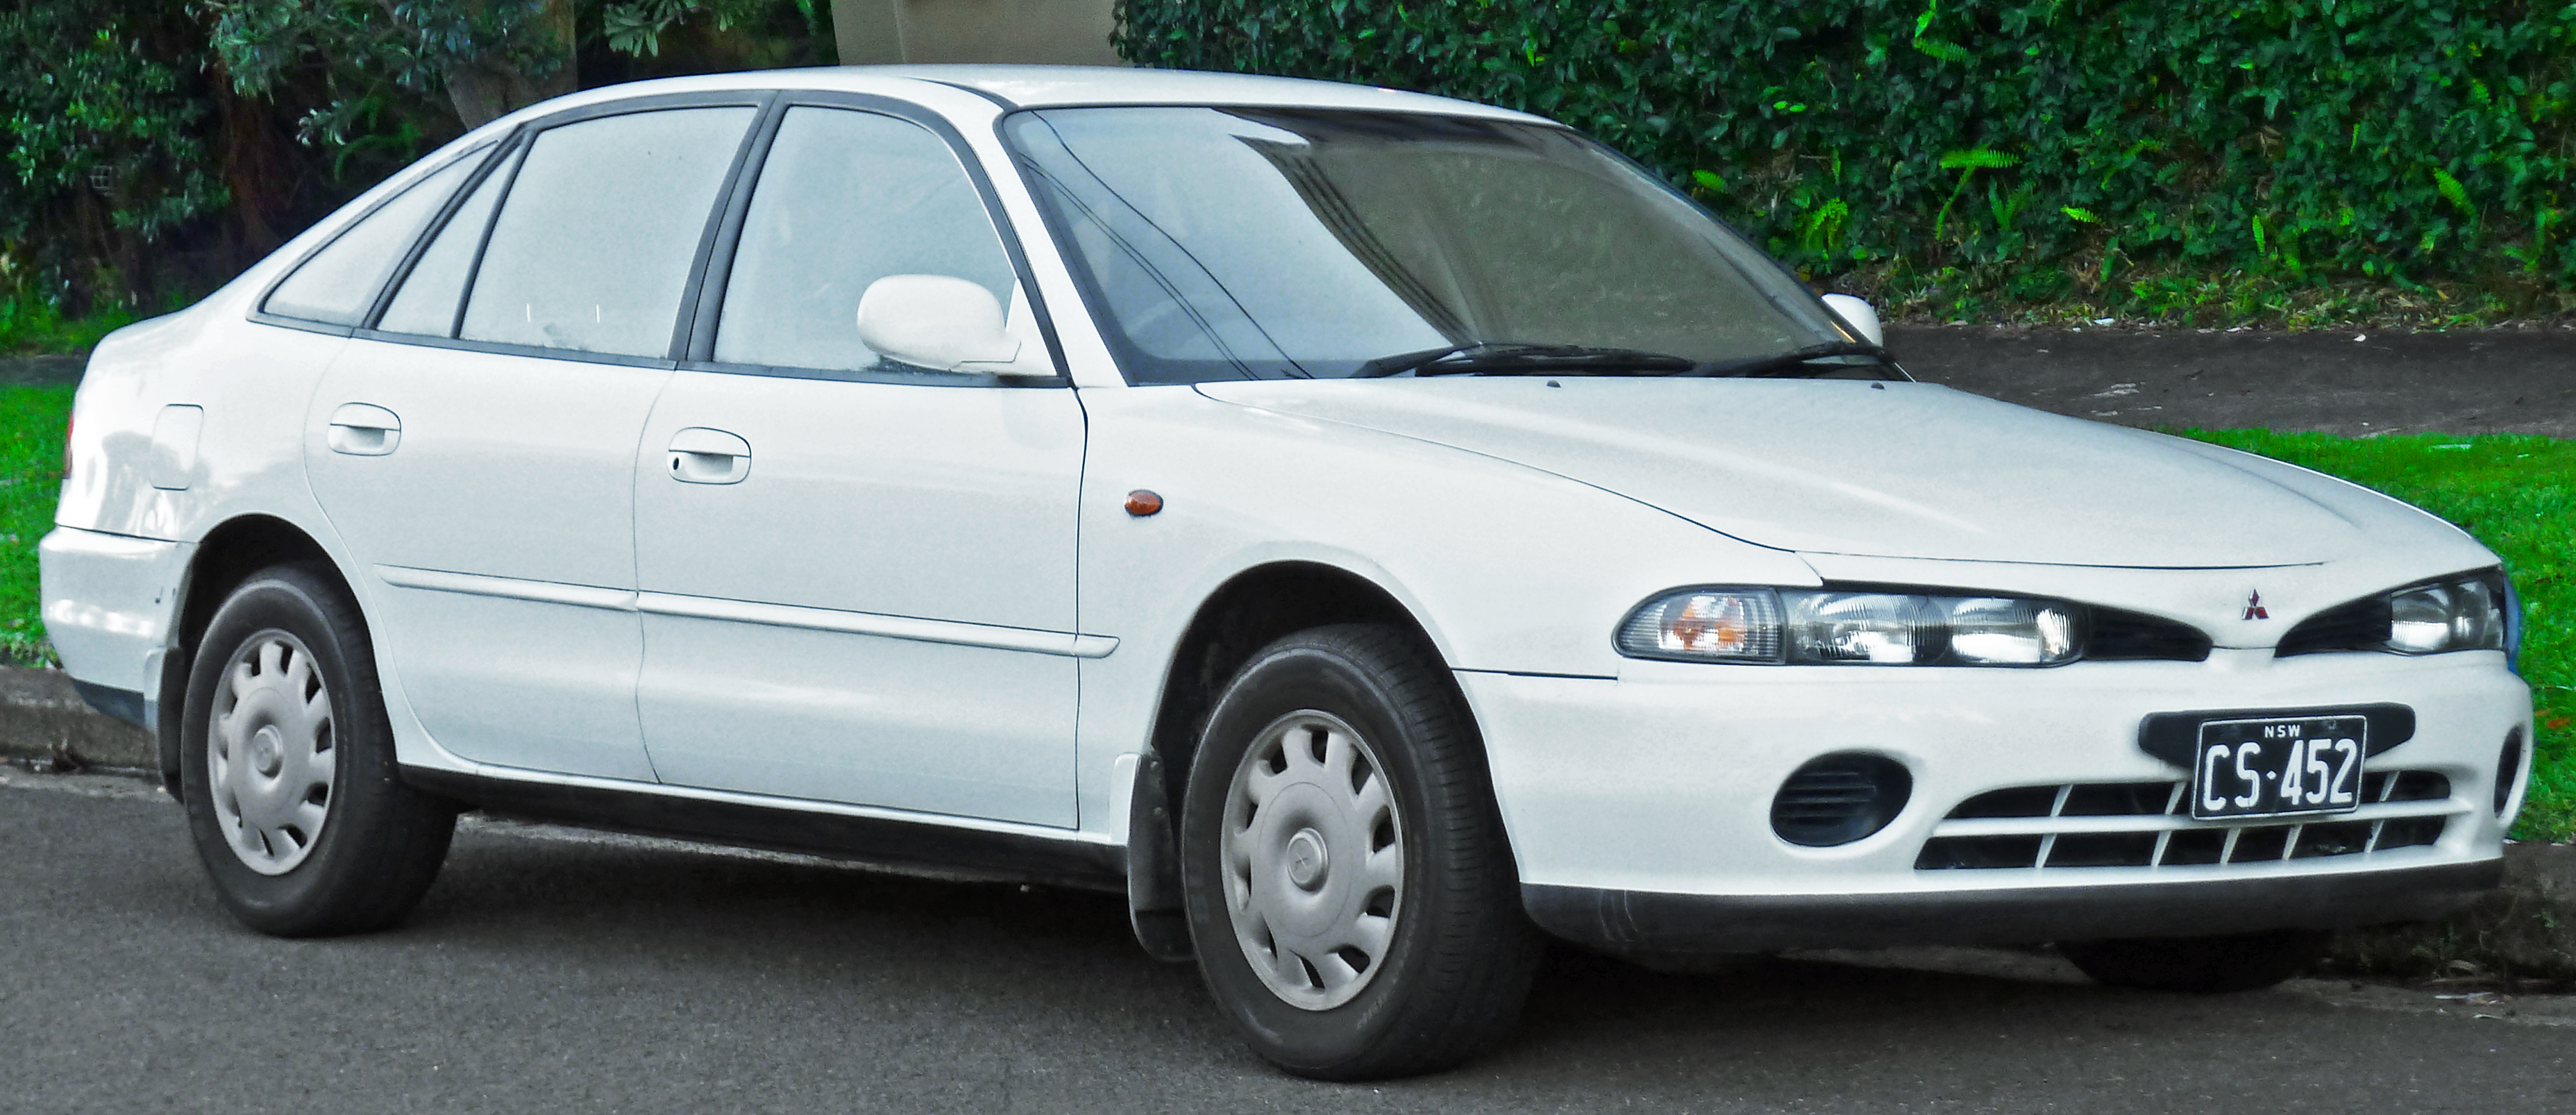 1999 Mitsubishi Galant viii station wagon (a4) – pictures ...